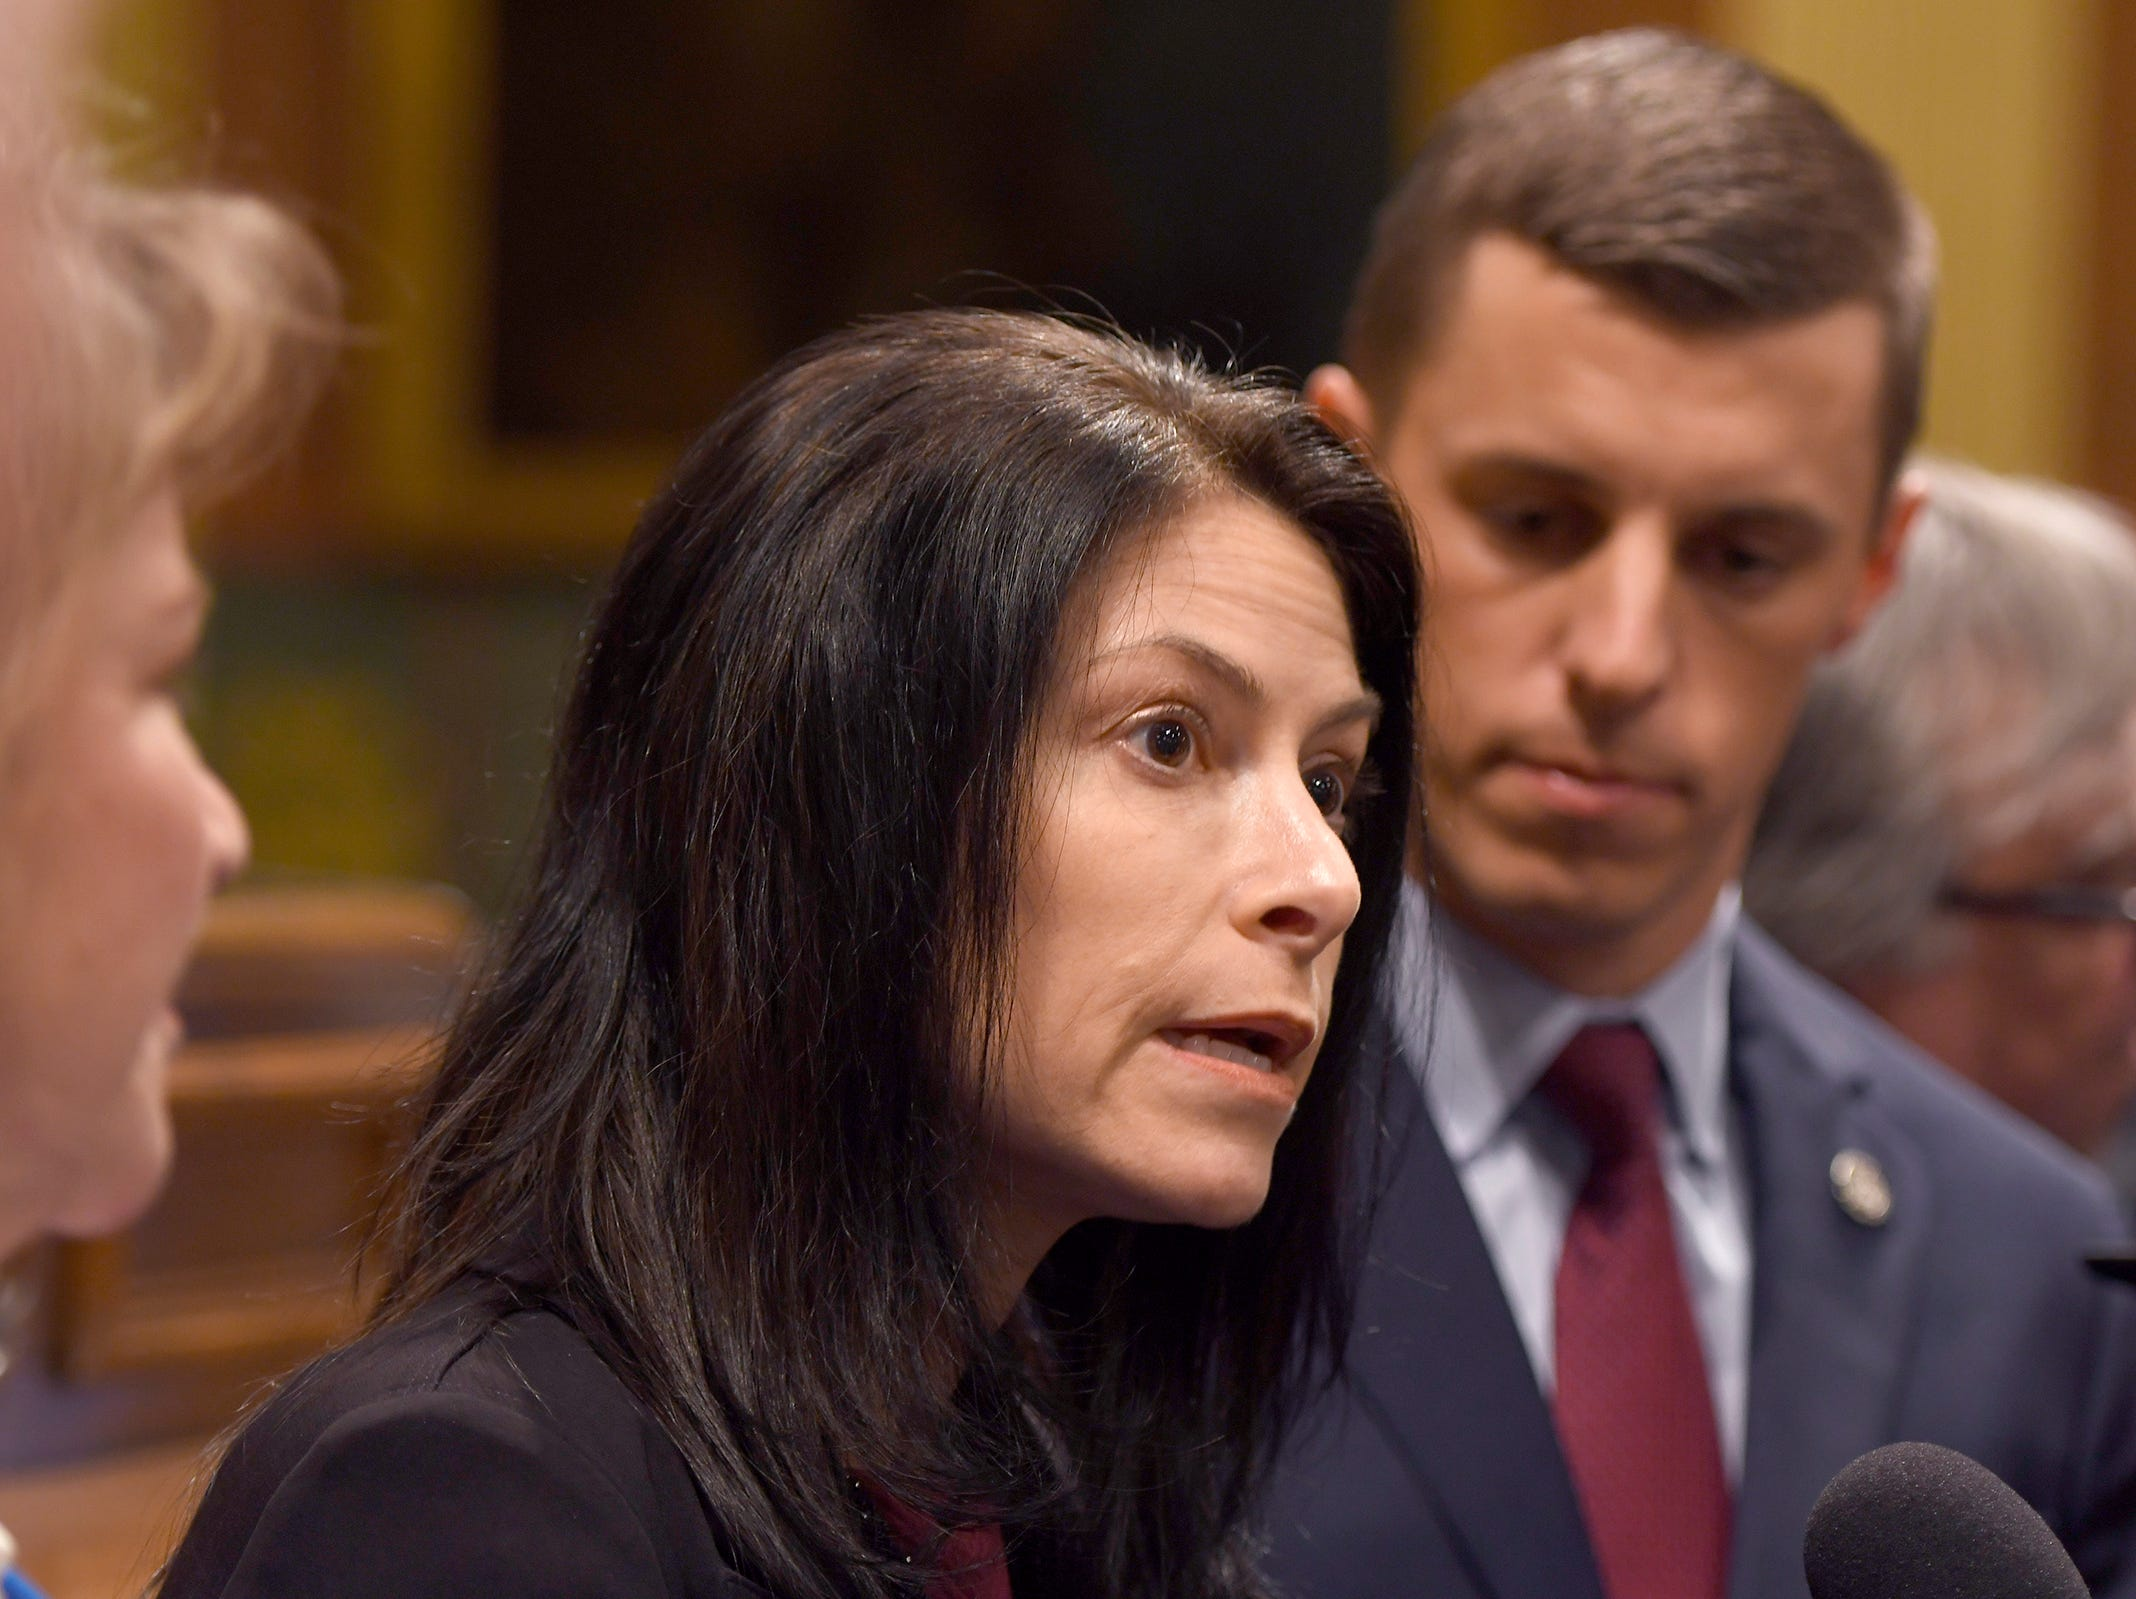 Michigan Attorney General Dana Nessel, and House Speaker Lee Chatfield speak to the media after the opening ceremonies.